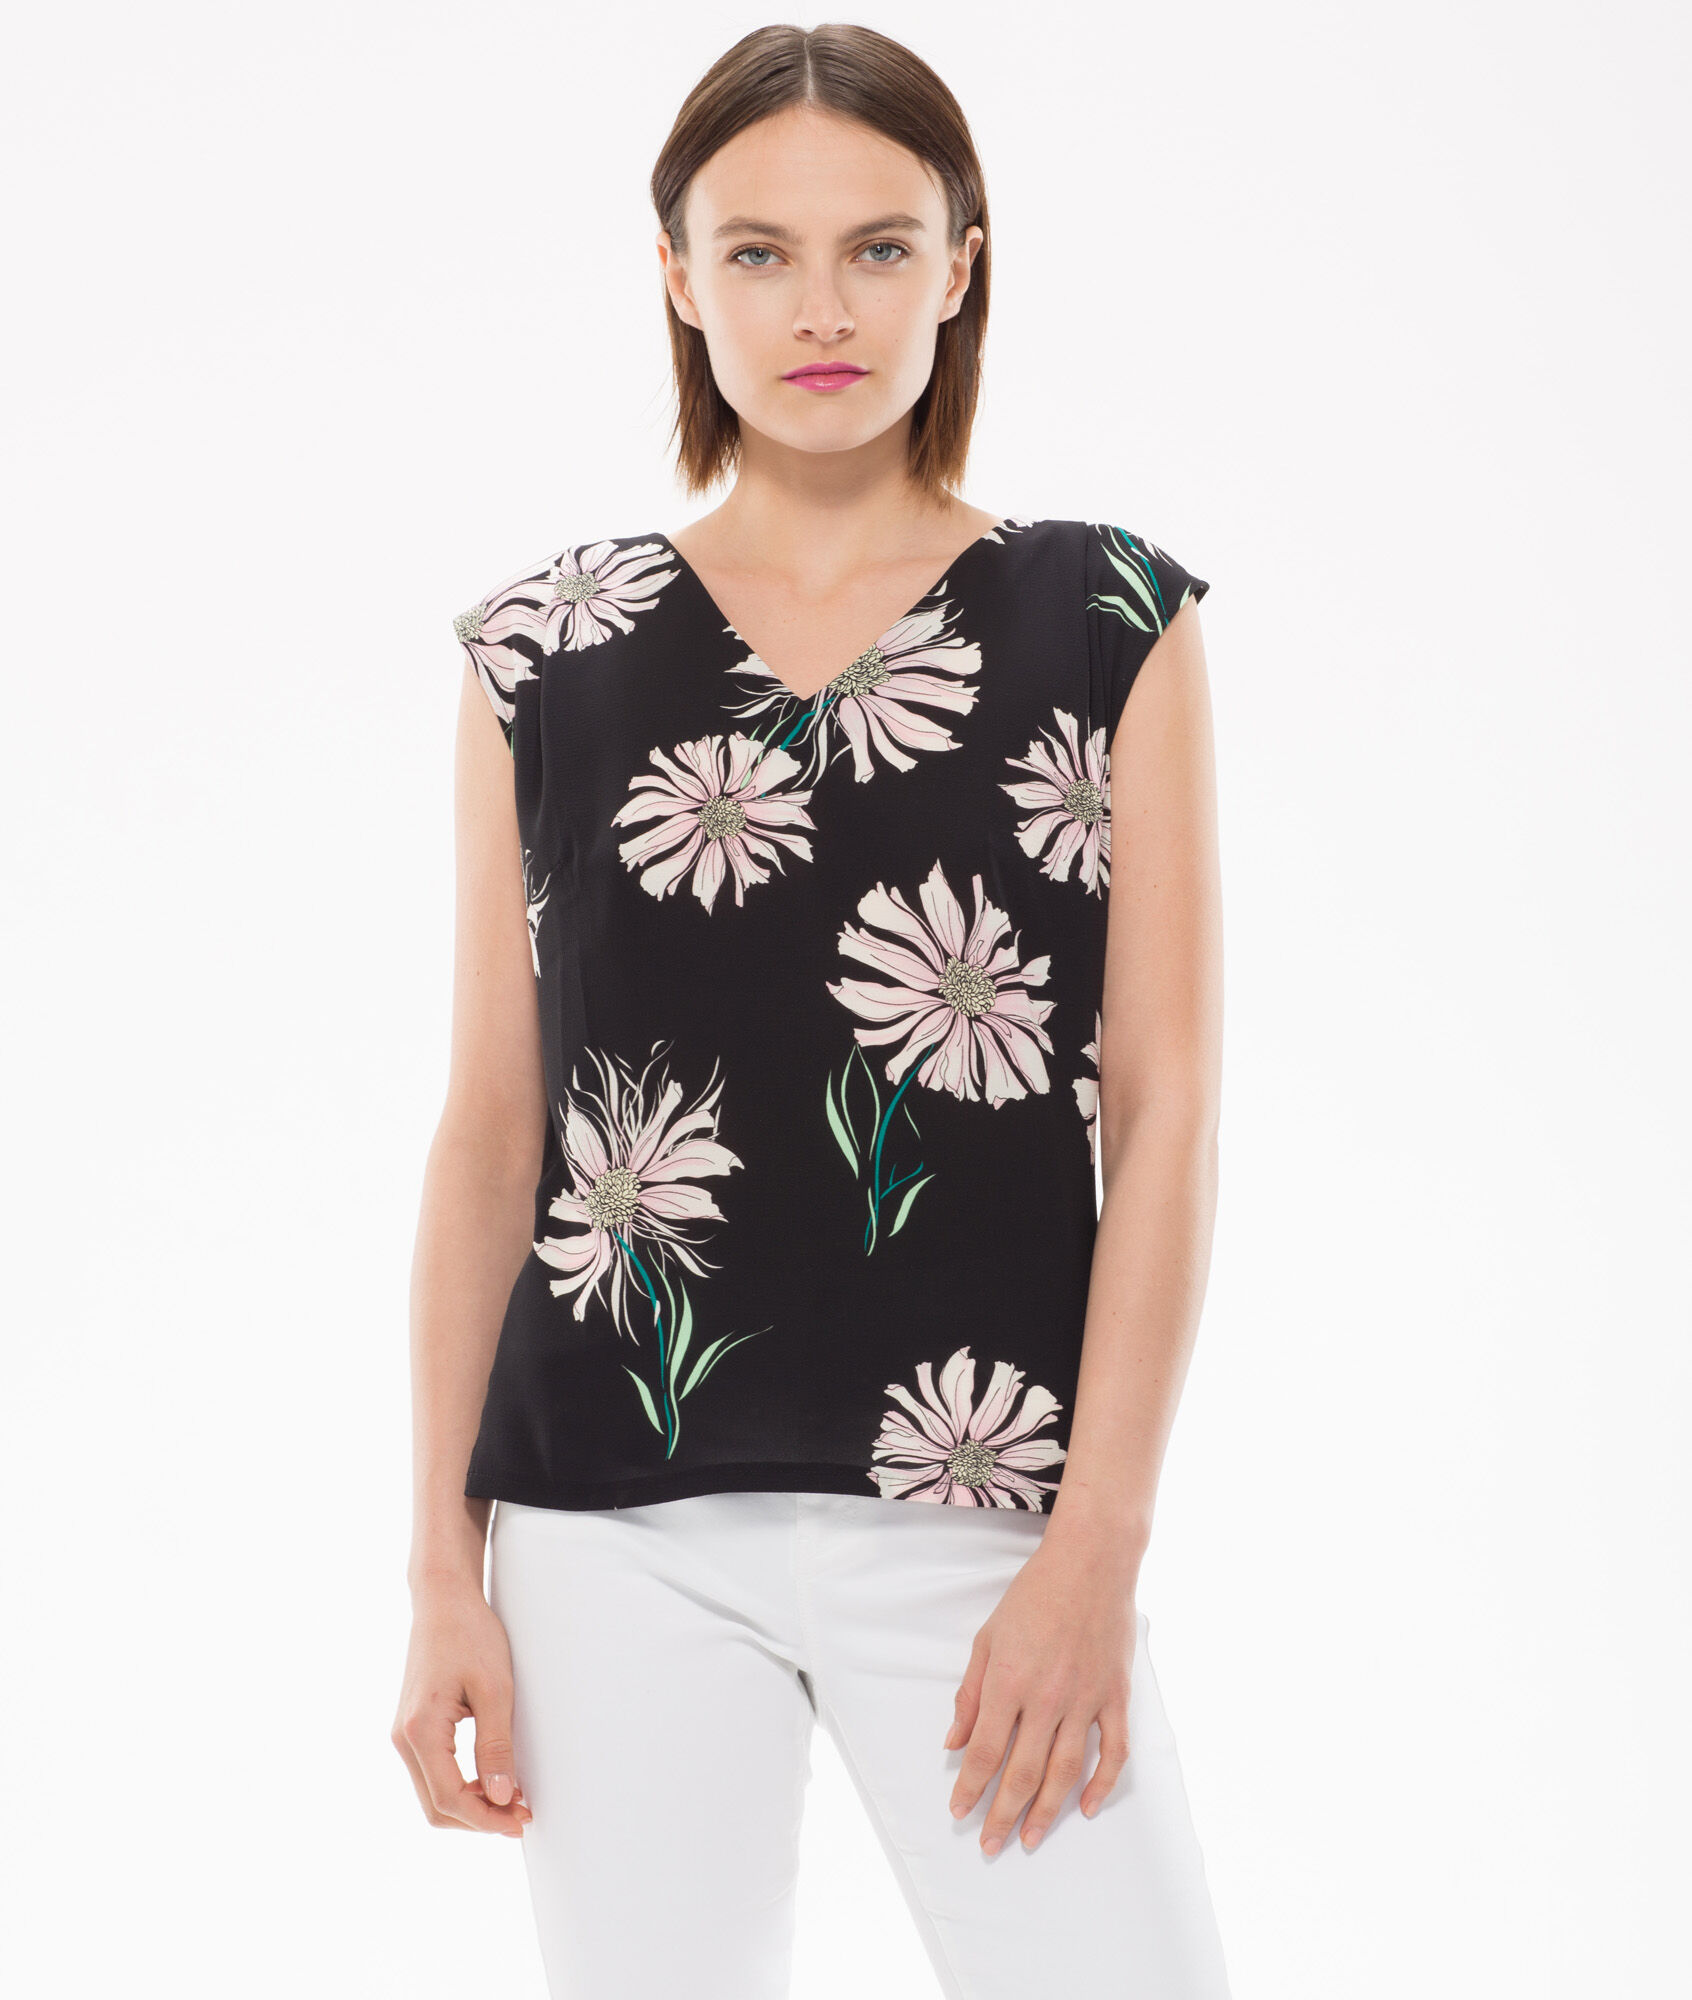 Black t shirt with print - Narguerite Black T Shirt With Floral Print